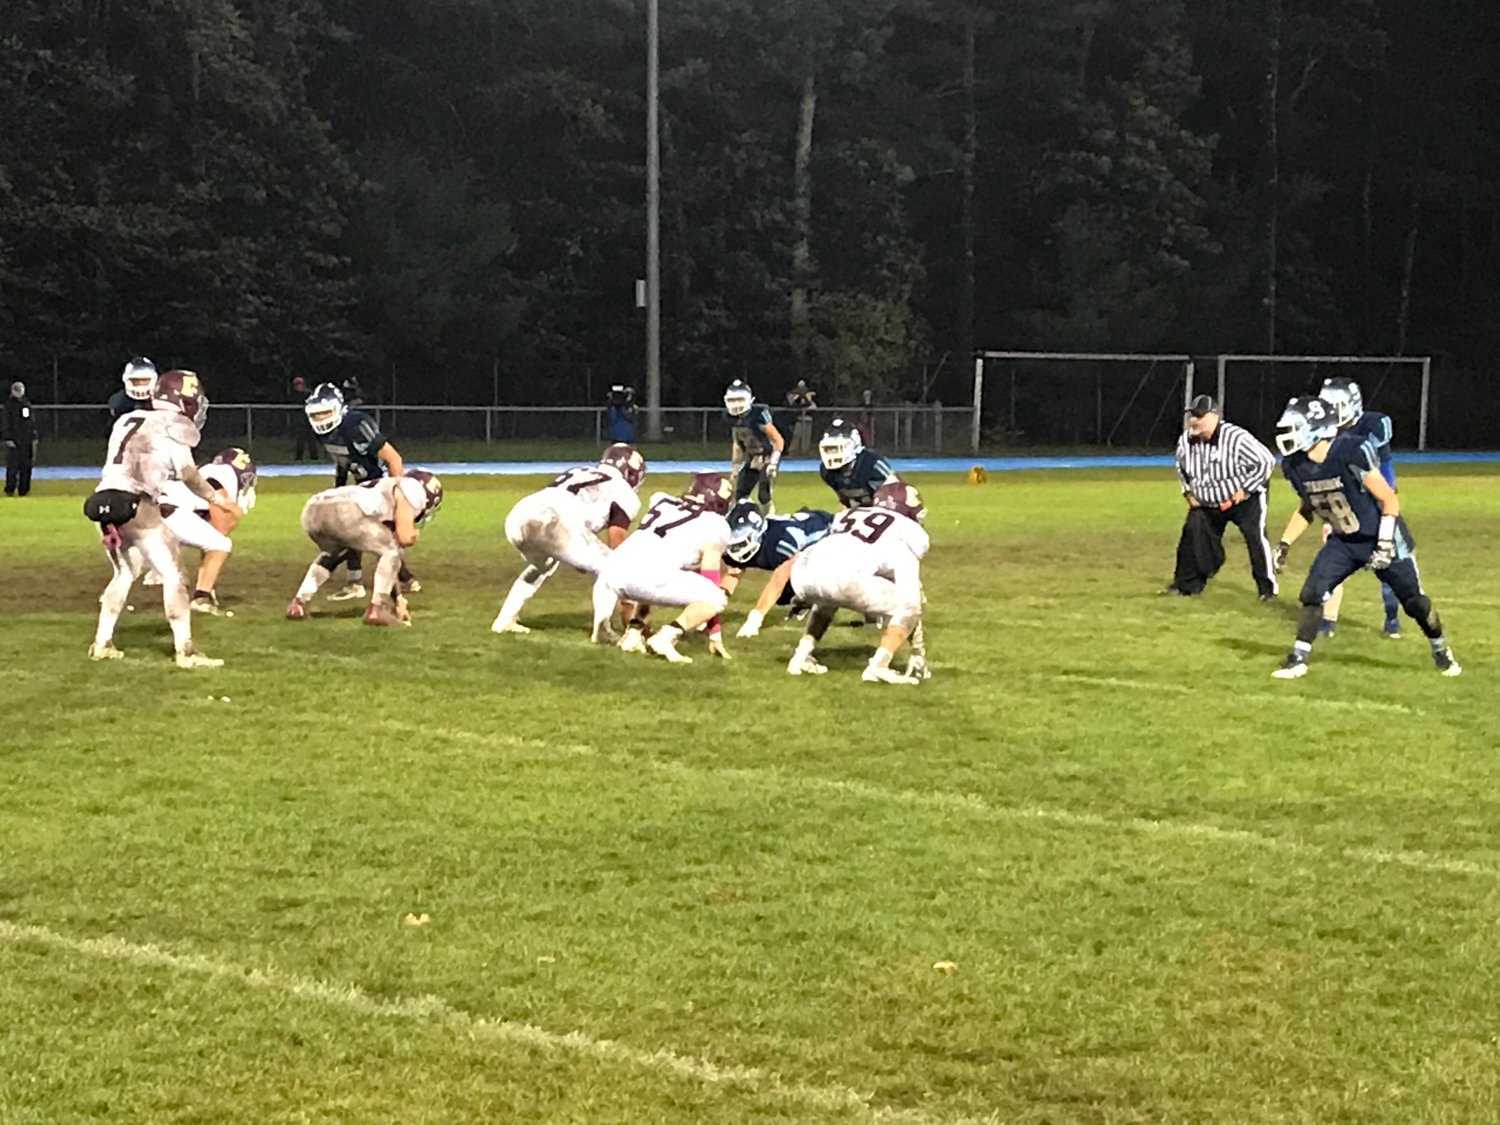 The Seekonk defense gets ready before the ball is snapped.